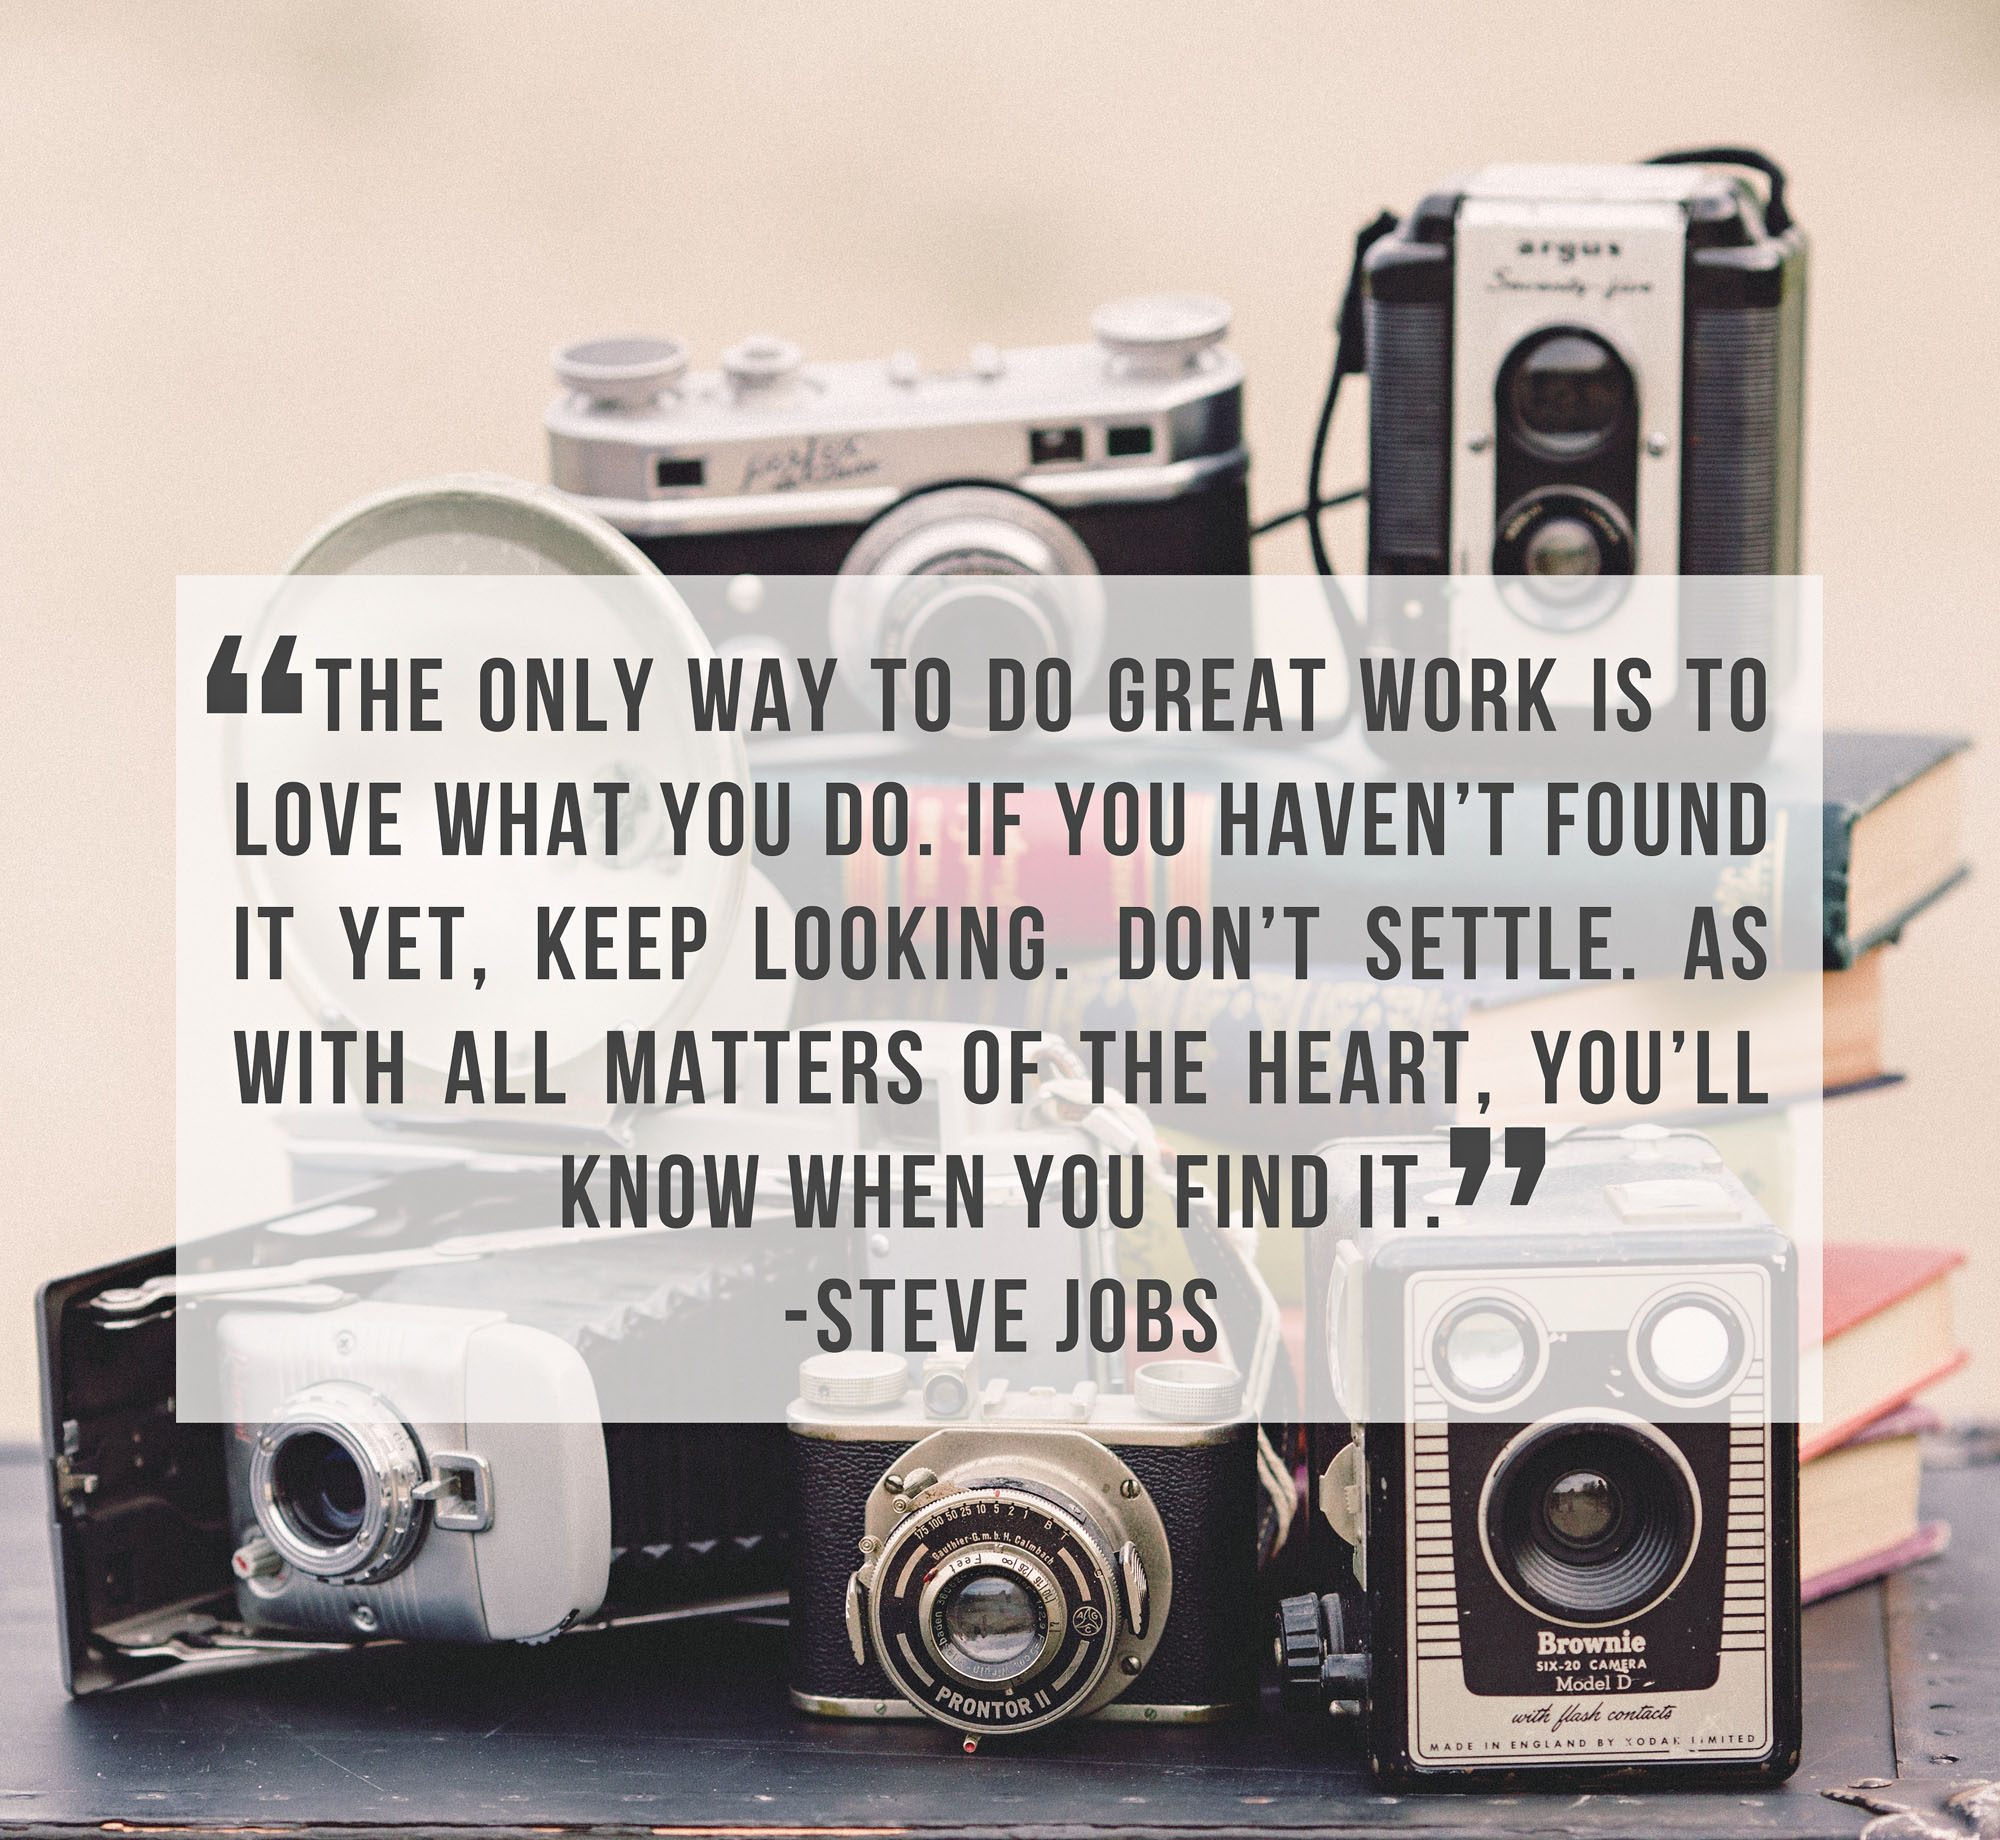 steve job, pursue your dreams, never give up